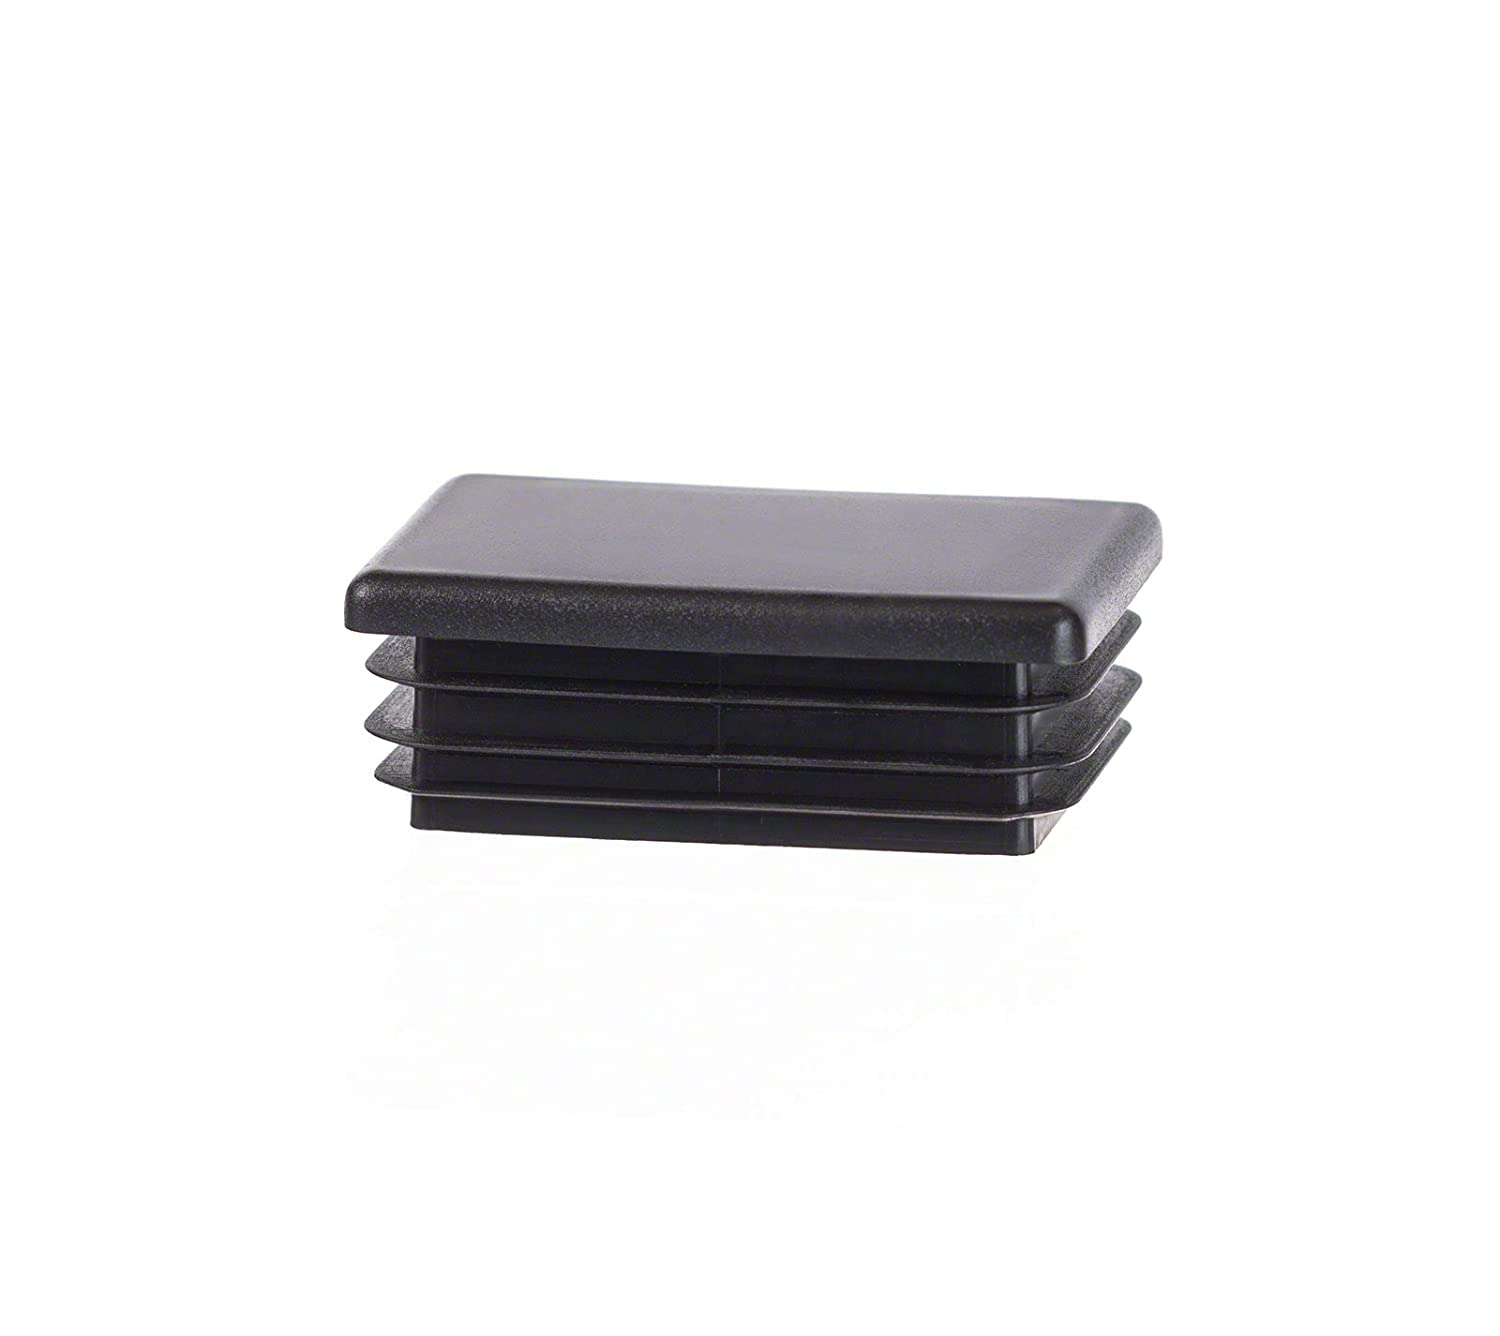 10 pcs. Rectangular tubing end Cap 40x15 57x0 59 1 All items in the store Colorado Springs Mall inch mm Bla